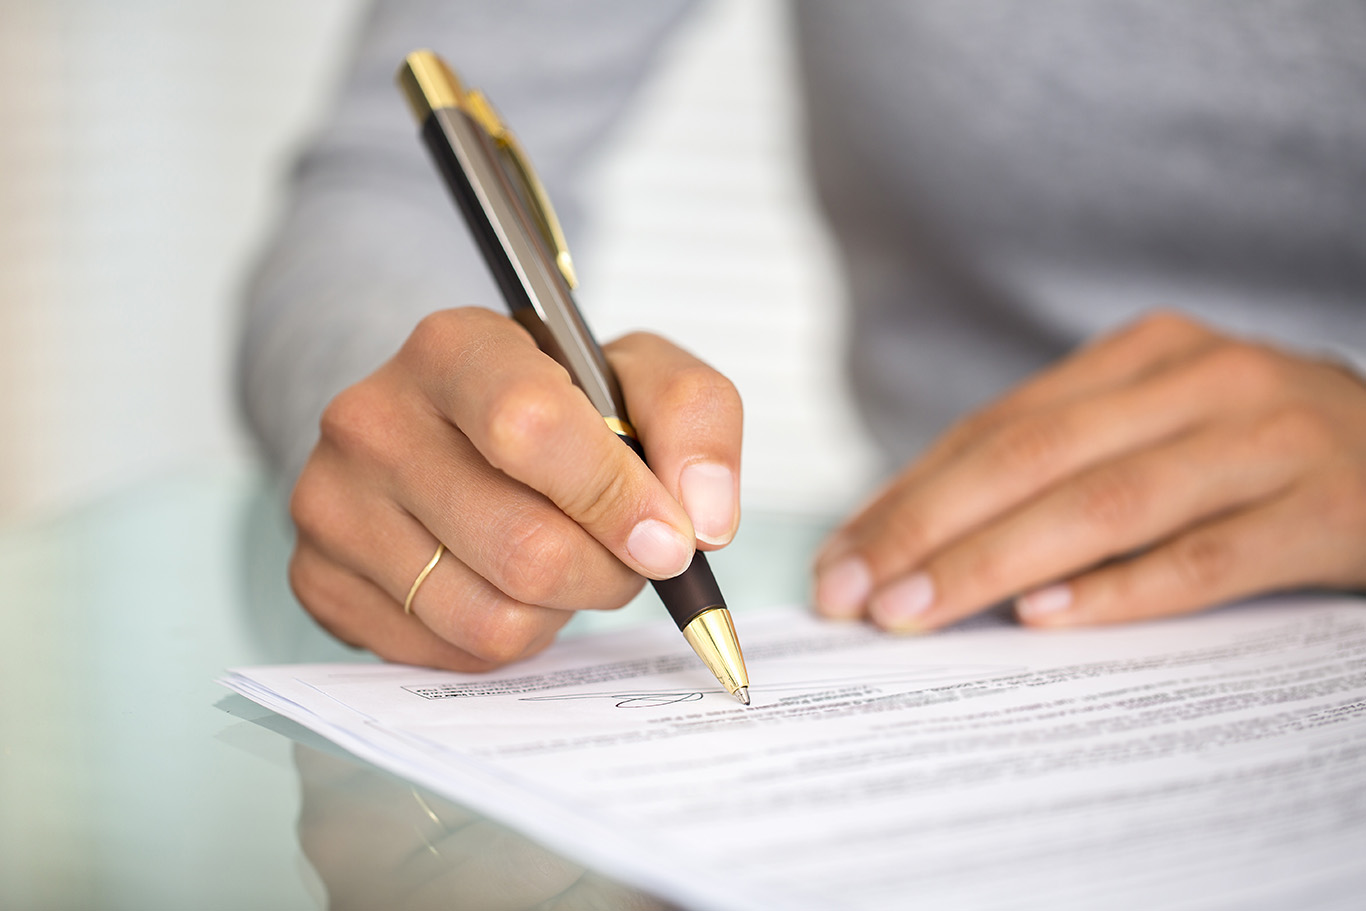 Person filling out paperwork.